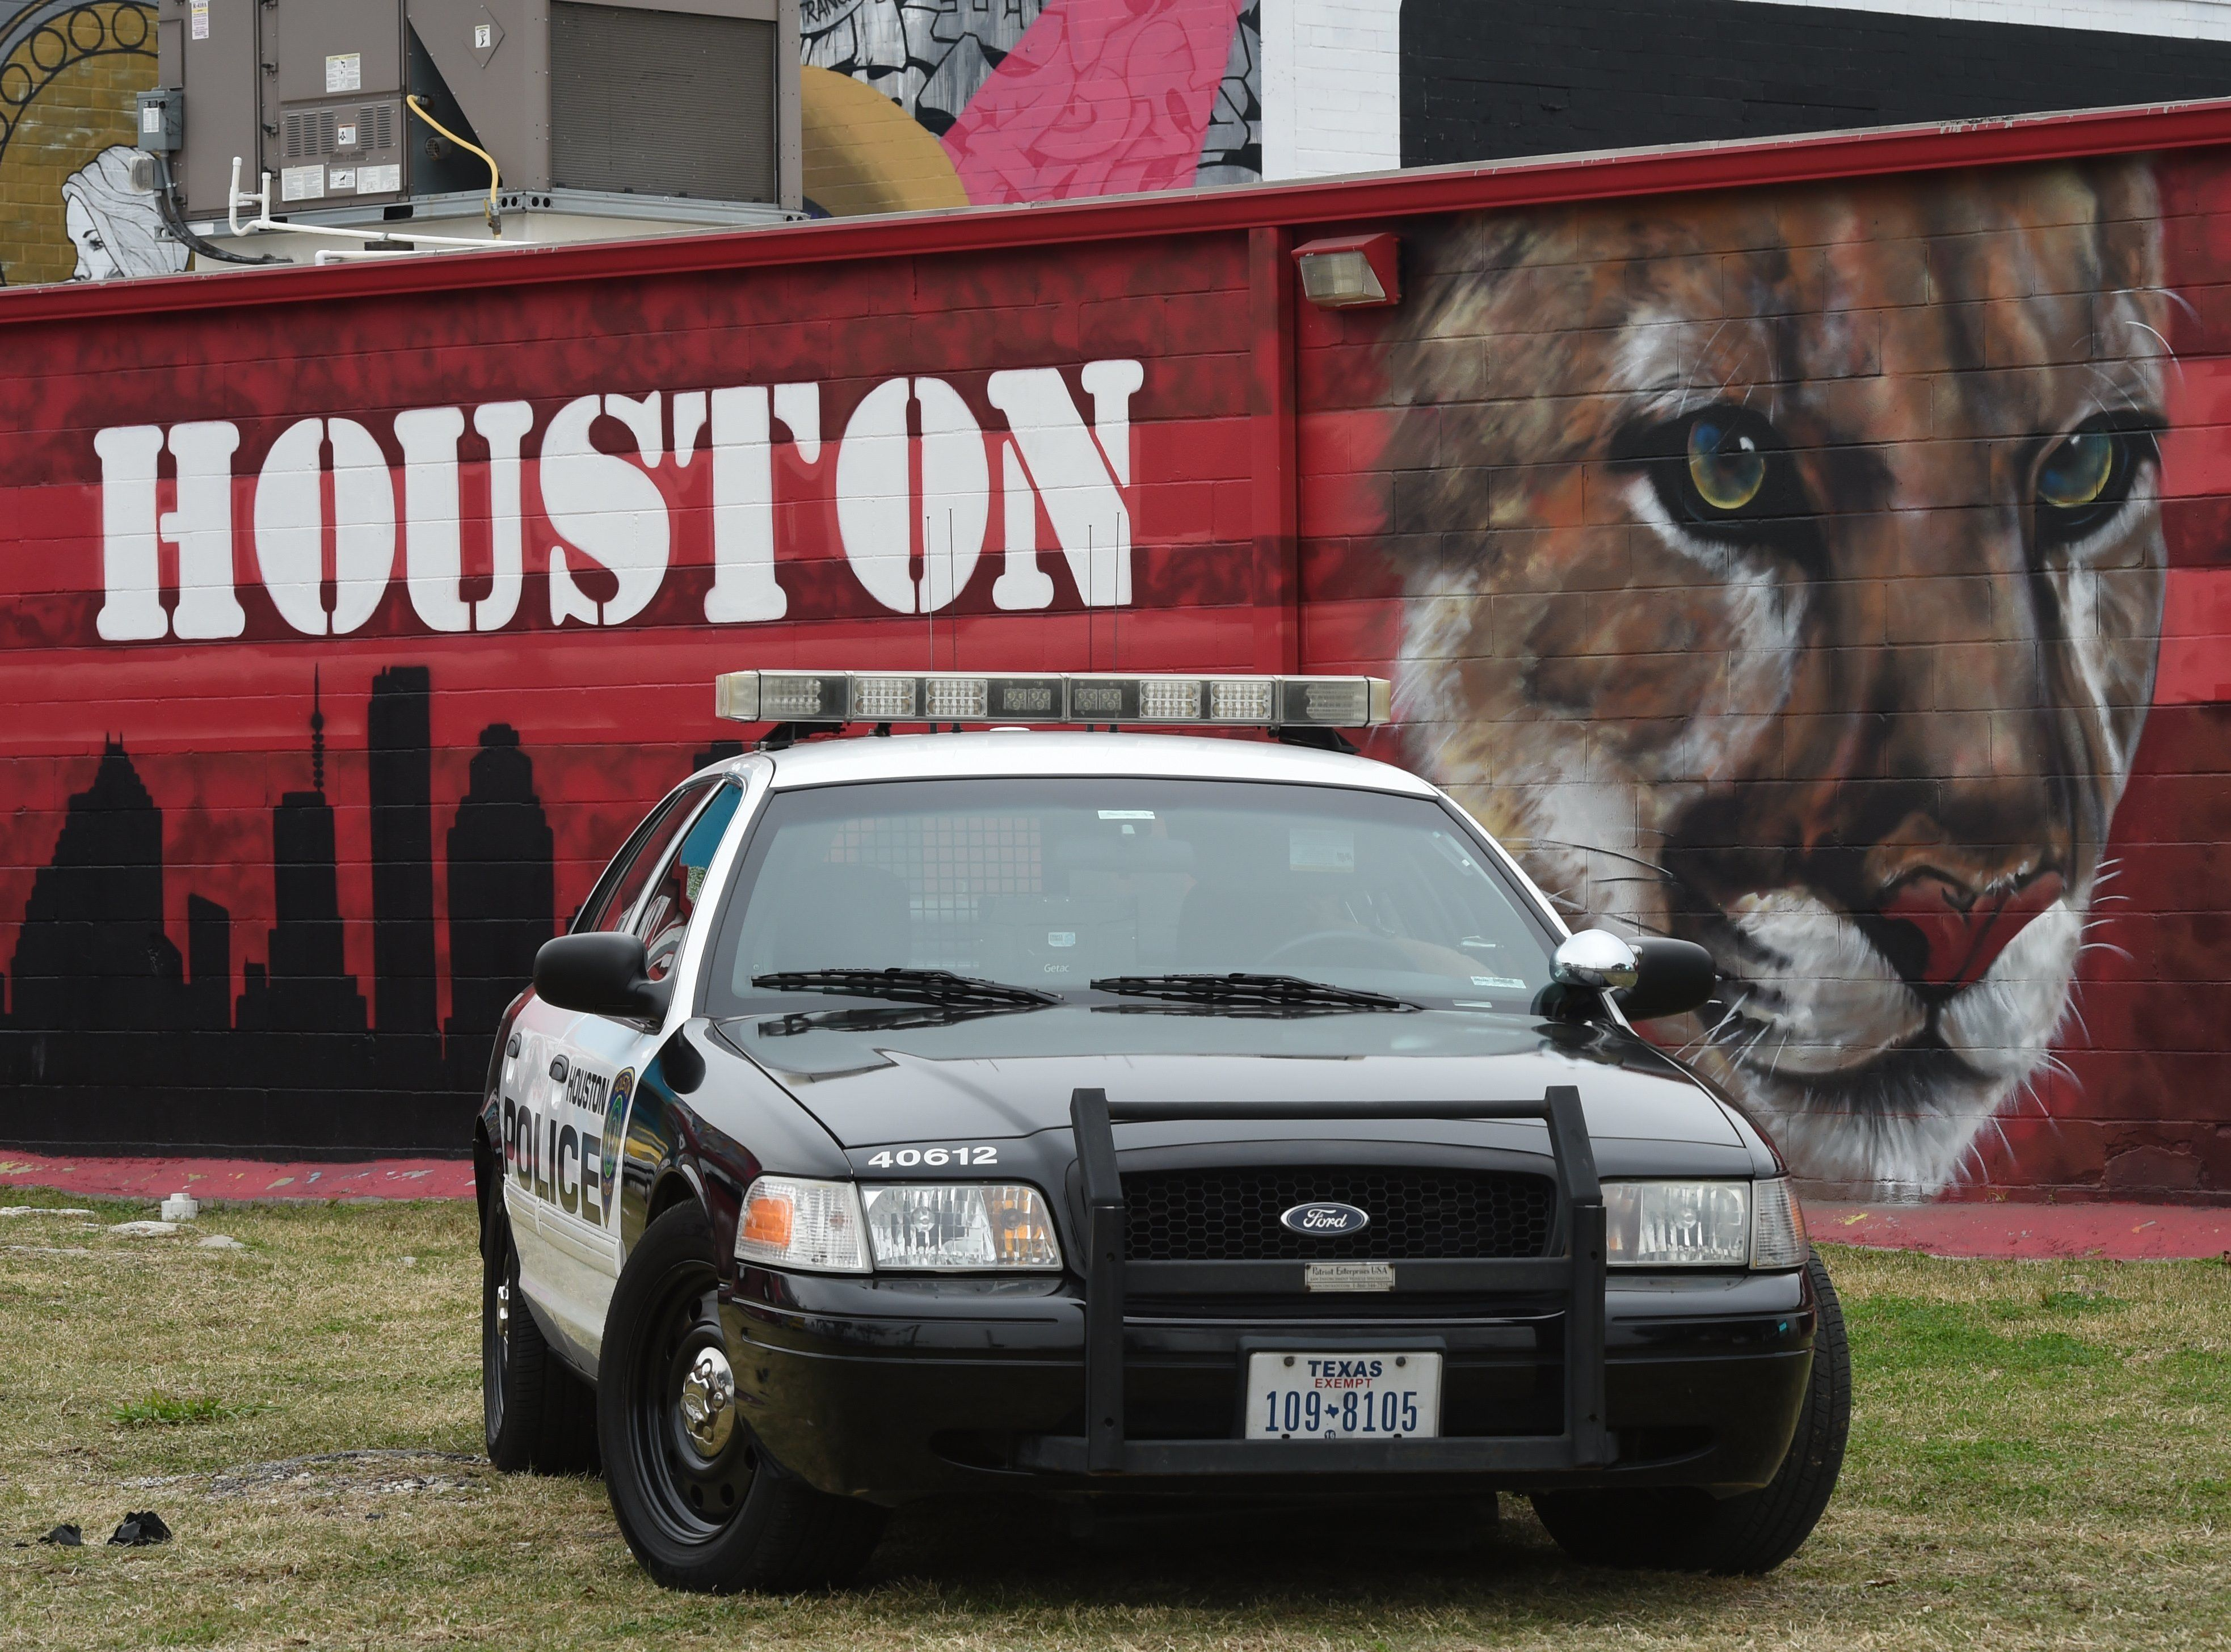 A Houston police car in front of a graffiti-covered building in the Old Chinatown section of downtown near the  NFL Experience  at the George R. Brown Convention Center February 4, 2017 in Houston, Texas one day before the New England Patriots play the Atlanta Falcons in Super Bowl 51. / AFP / TIMOTHY A. CLARY        (Photo credit should read TIMOTHY A. CLARY/AFP/Getty Images)